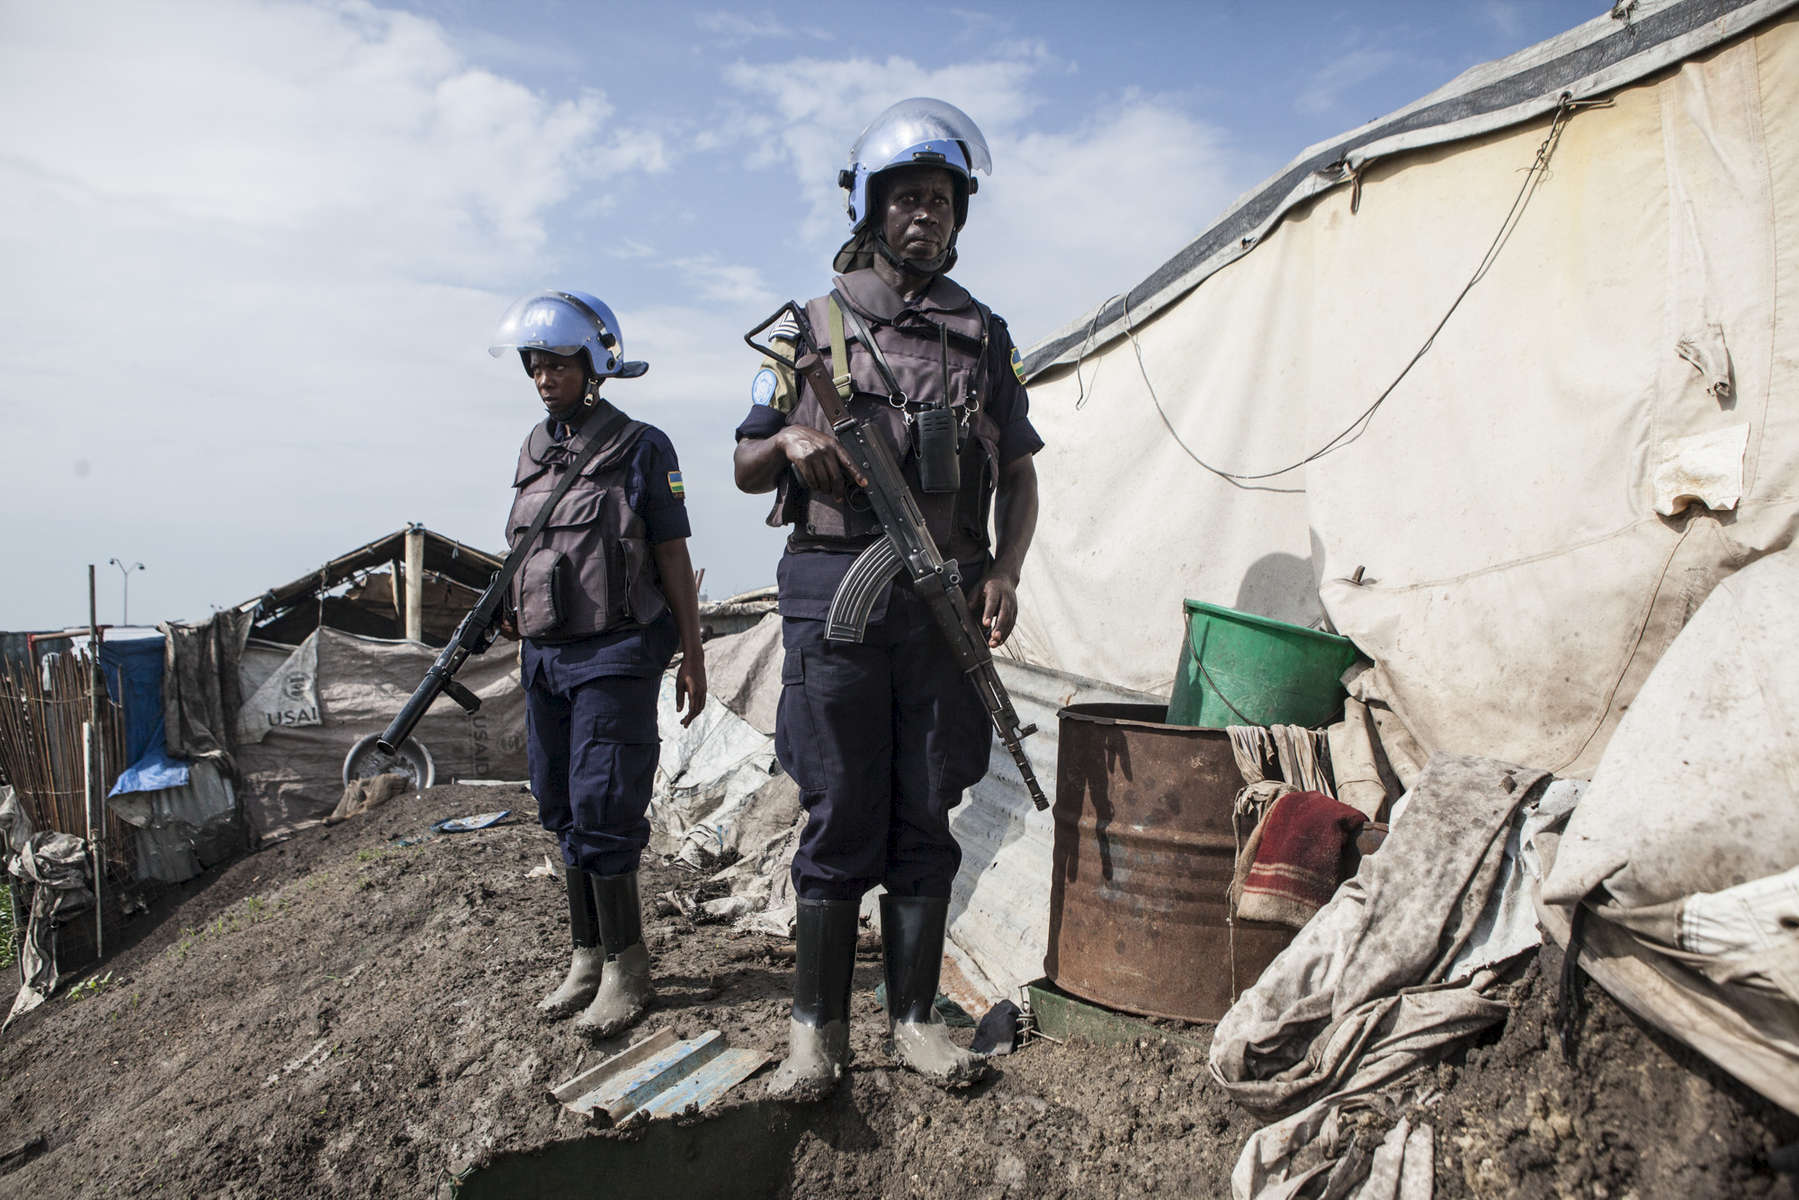 Members of the United Nations Police, UNPOL, search shelters for contraband in the Protection of Civilians (POC) site at the United Nations Mission in South Sudan (UNMISS) compound in Malakal, South Sudan on Friday, July 15, 2016. The Malakal POC site houses over 32,000 displaced people mainly from the Shilluk and Nuer tribes. In February of this year, members of the Dinka tribe, who resided in the camp at the time, carried out a coordinated attack within the site leading to the destruction of hundreds of shelters and many deaths. Since then, most members of the Dinka tribe have fled to Malakal town where they occupy the homes of those still displaced. The UN has assured the displaced people that increased security measures around the camp will protect them from any further attack. Most of the displace are not convinced.